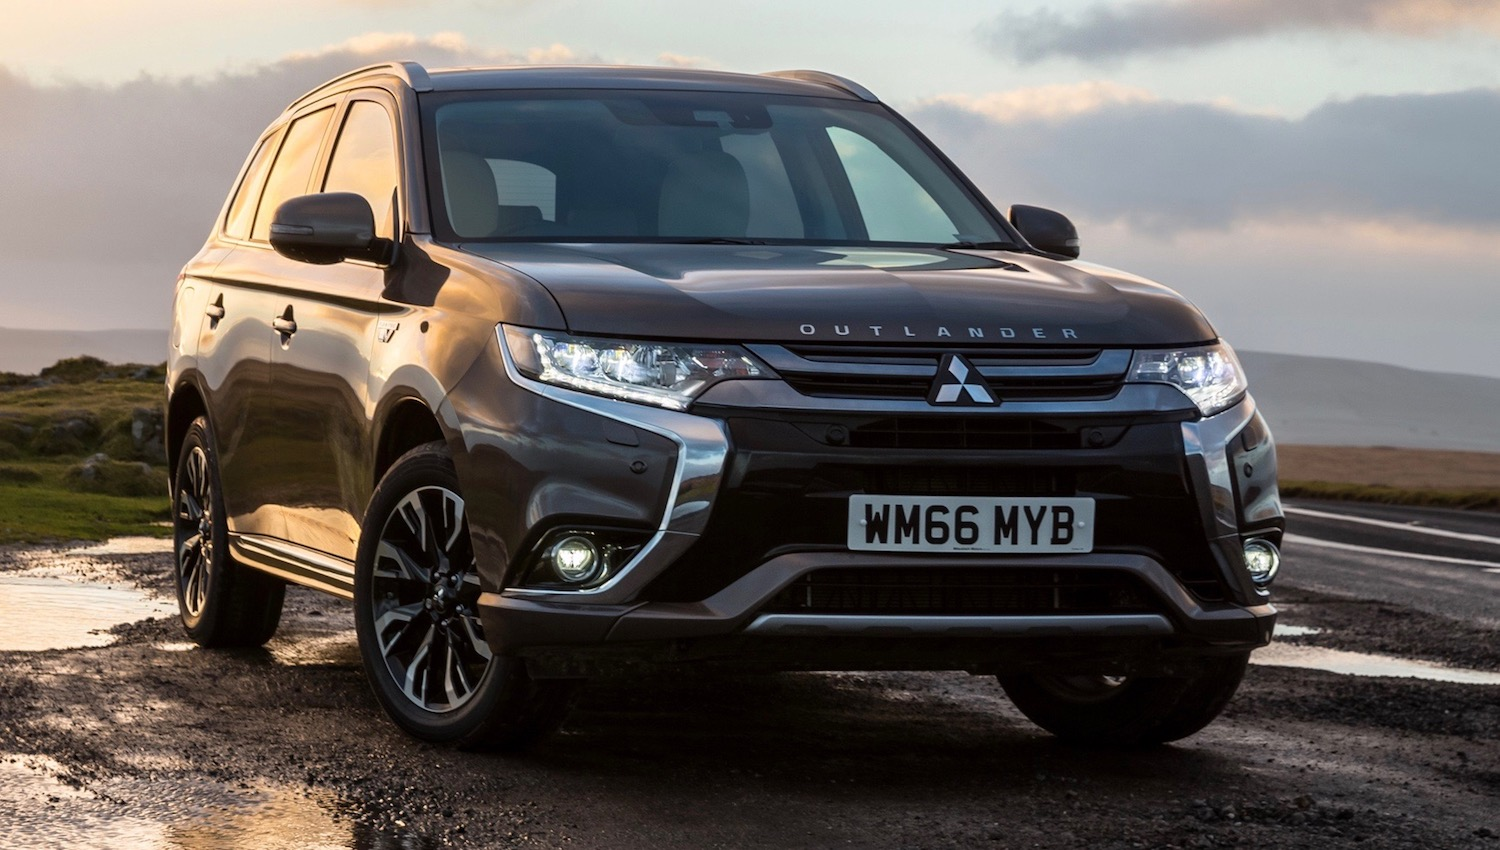 Mitsubishi Outlander PHEV 2017 updates - GreenCarGuide.co.uk